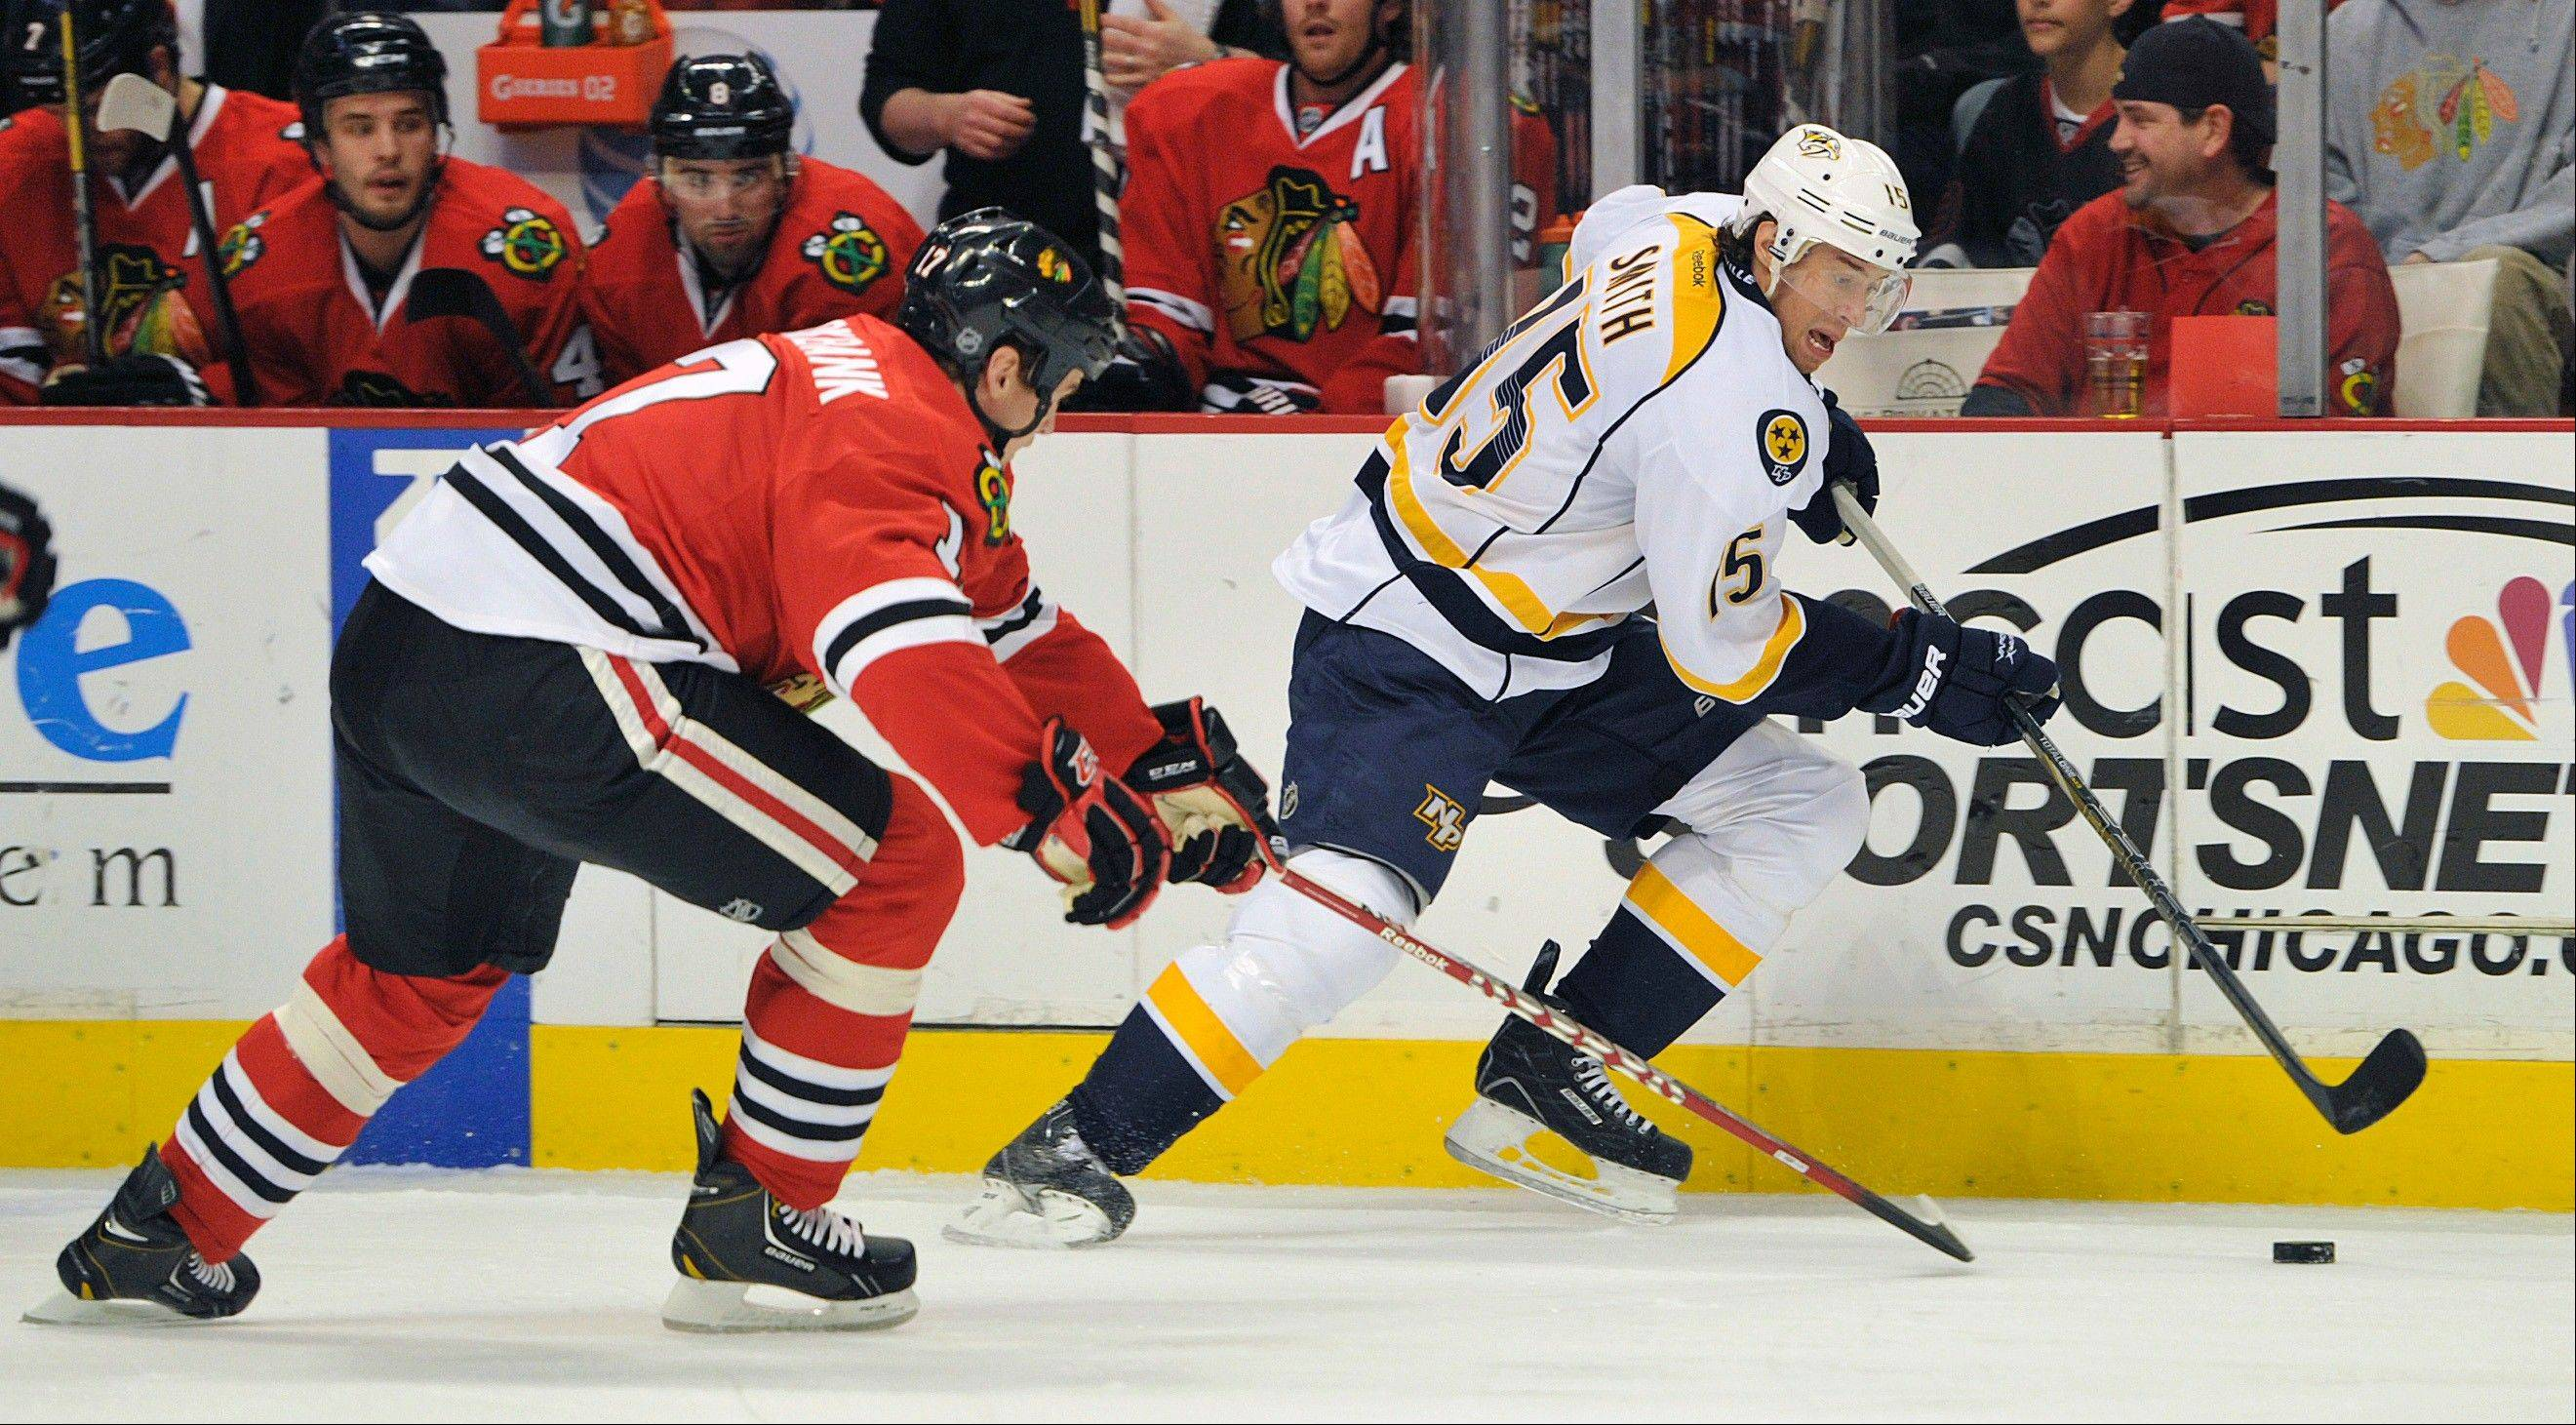 Chicago Blackhawks� Brent Seabrook, left, and Nashville Predators� Craig Smith (15) fight for the puck during the first period of an NHL hockey game Friday, April 19, 2013, in Chicago.